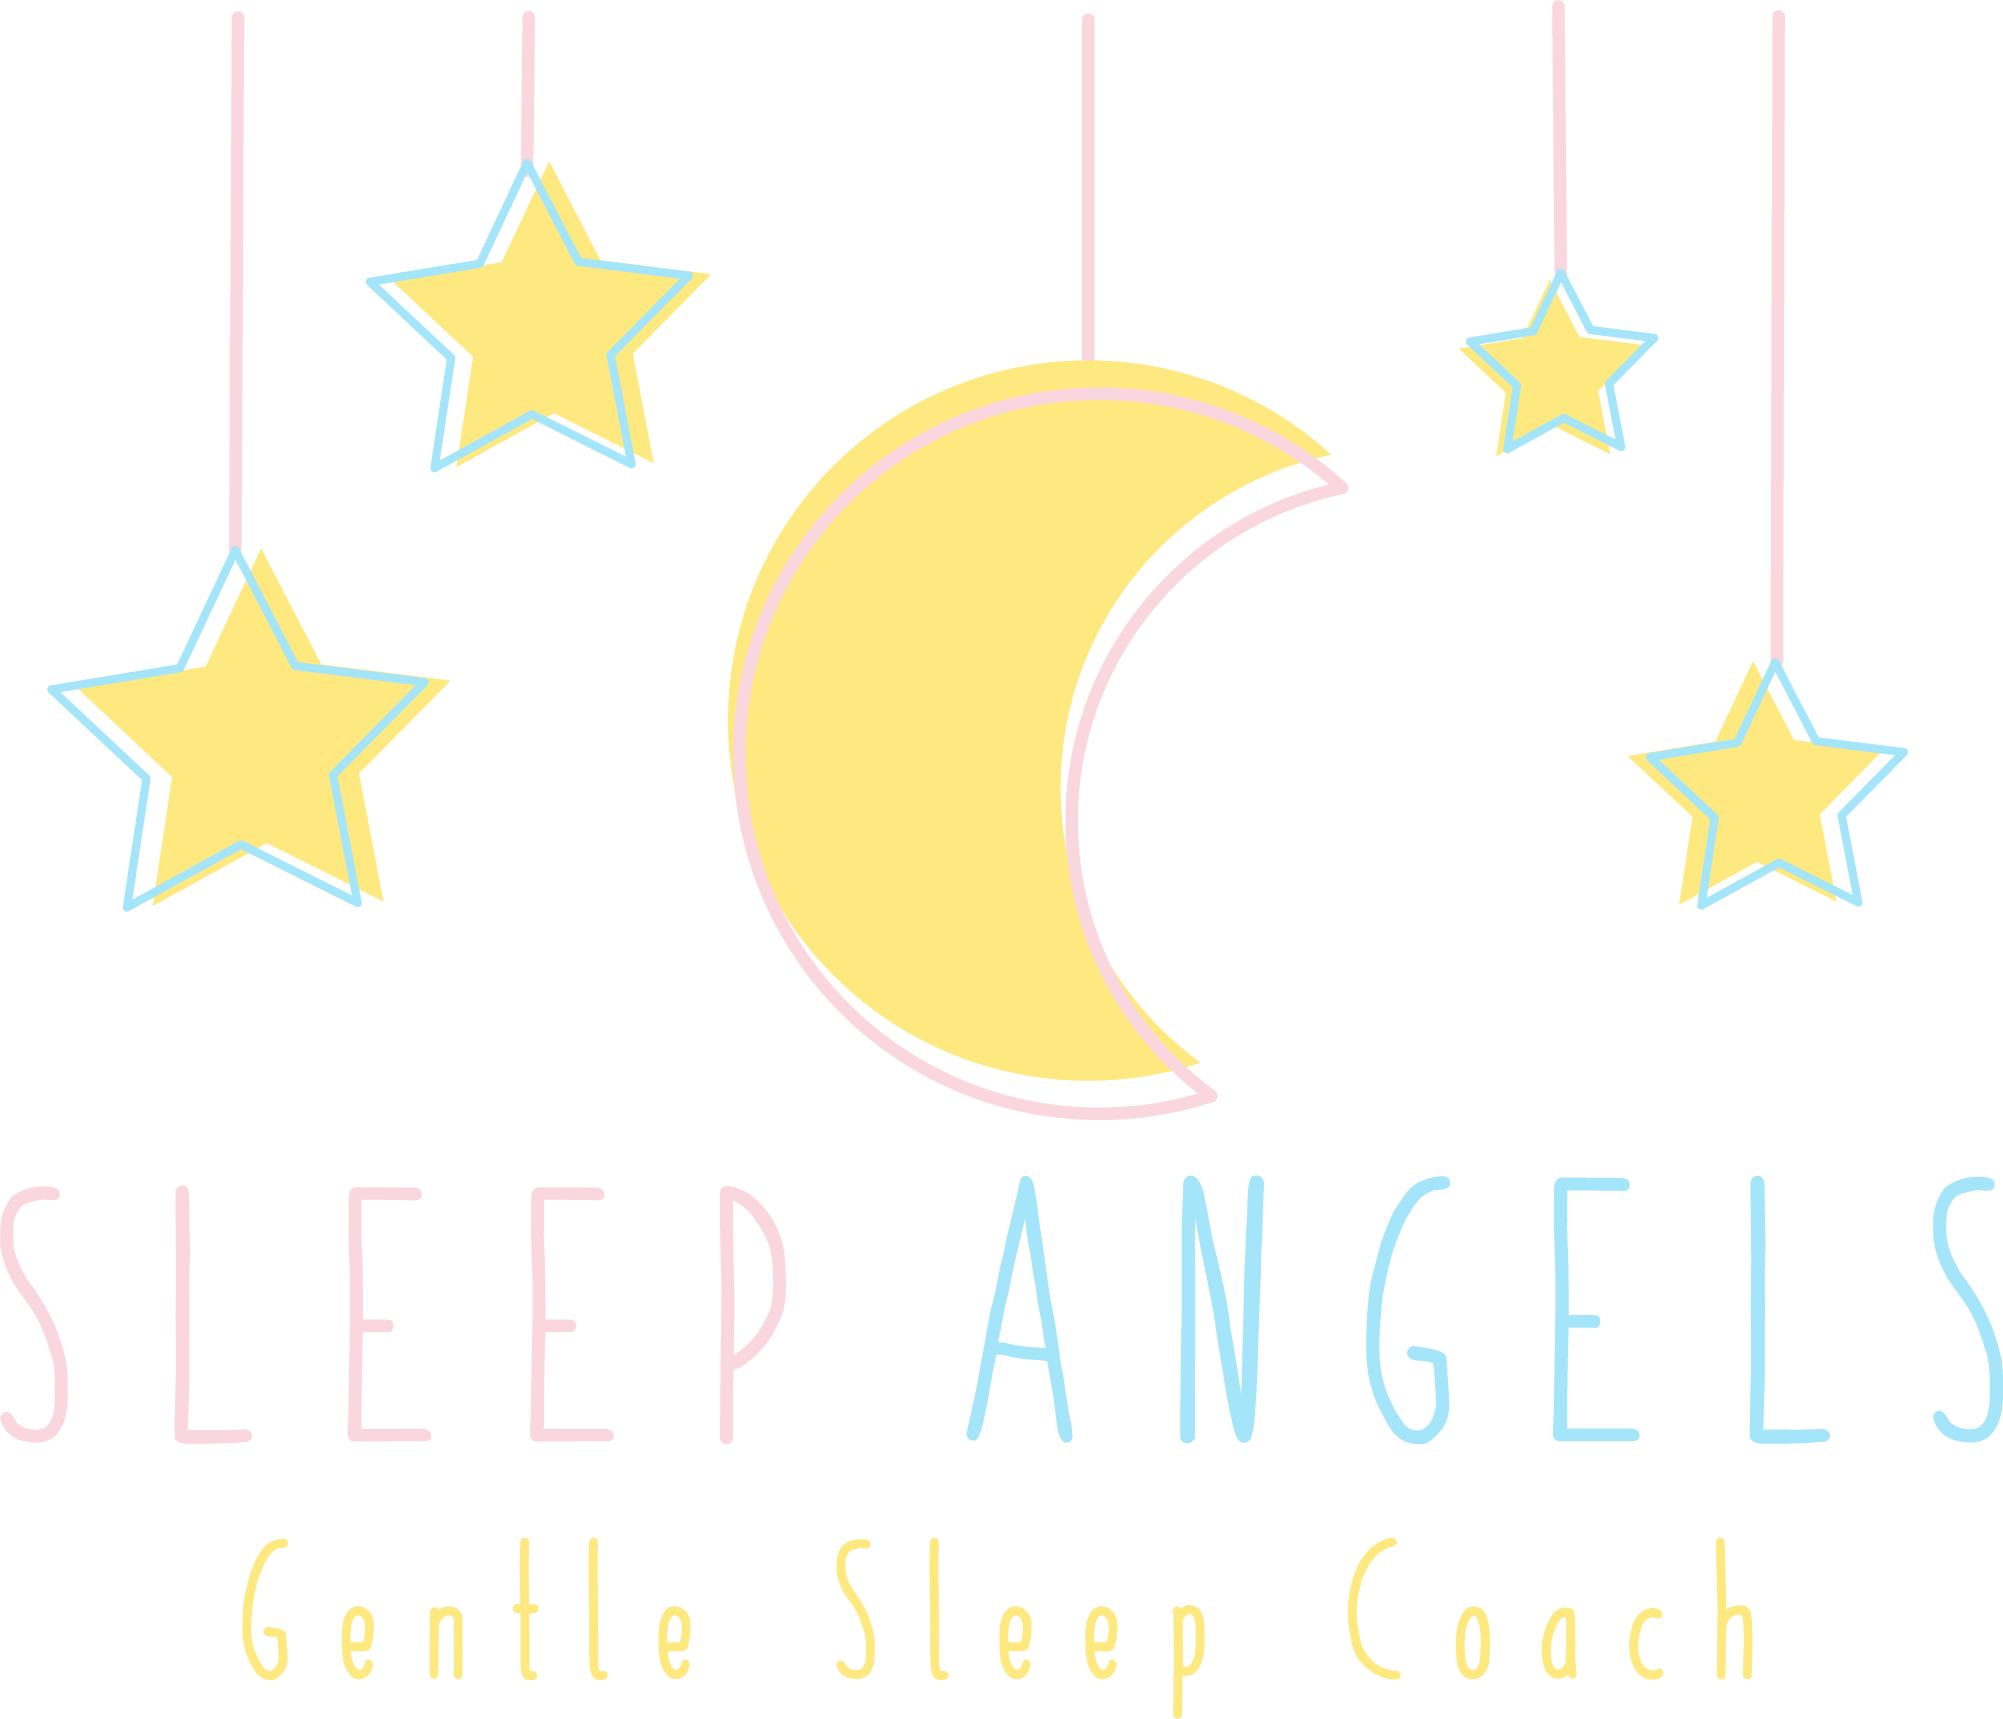 Sleep Angels